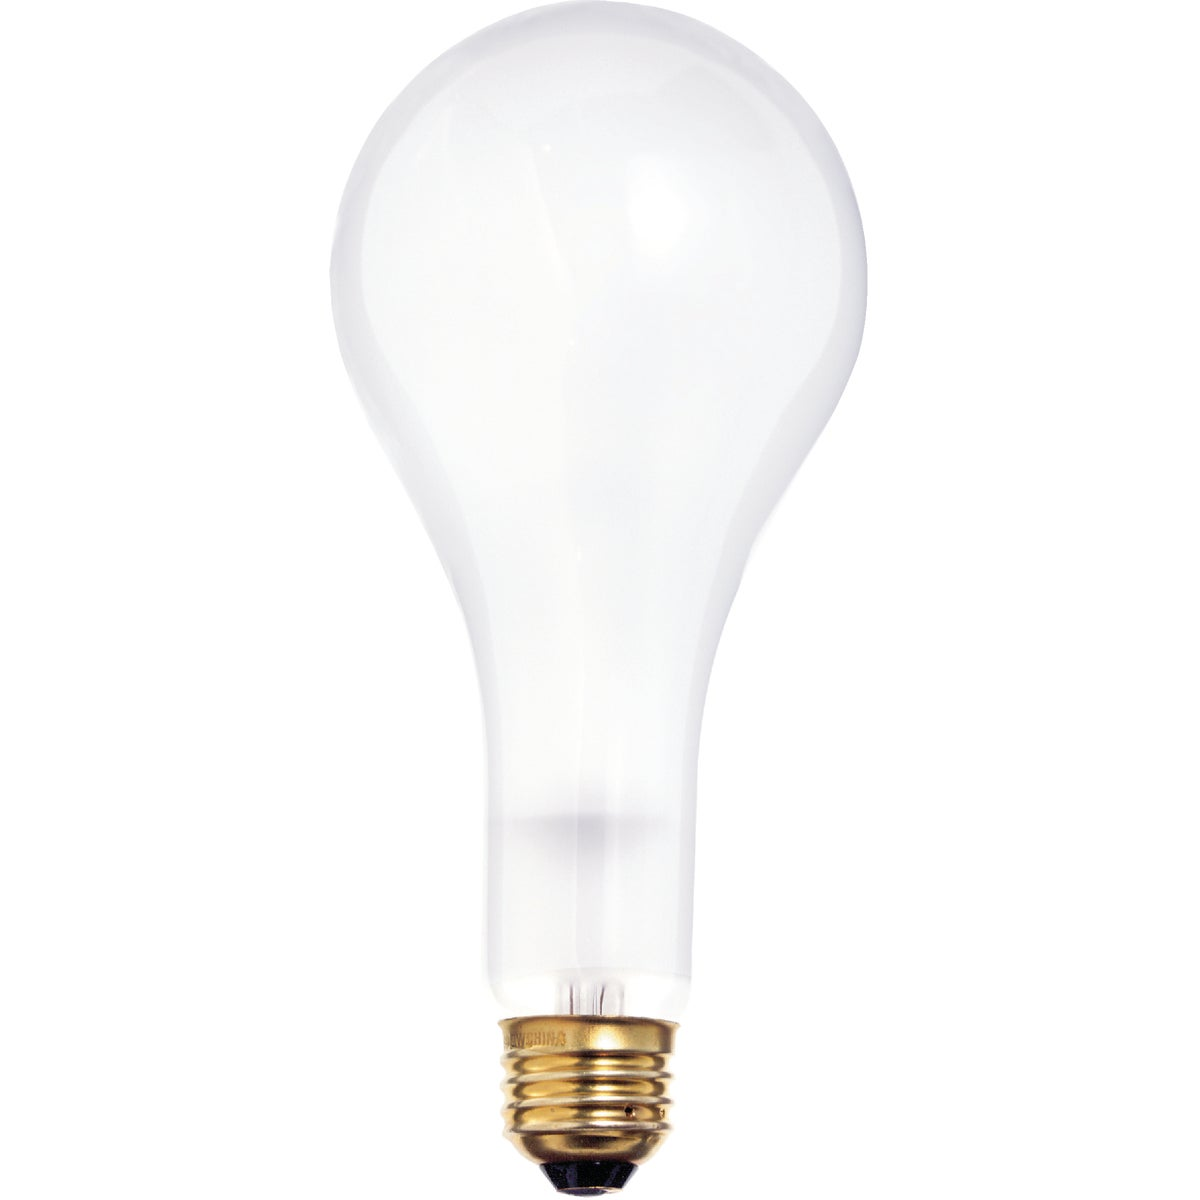 300 WATT FROST BULB - 73790 by G E Lighting